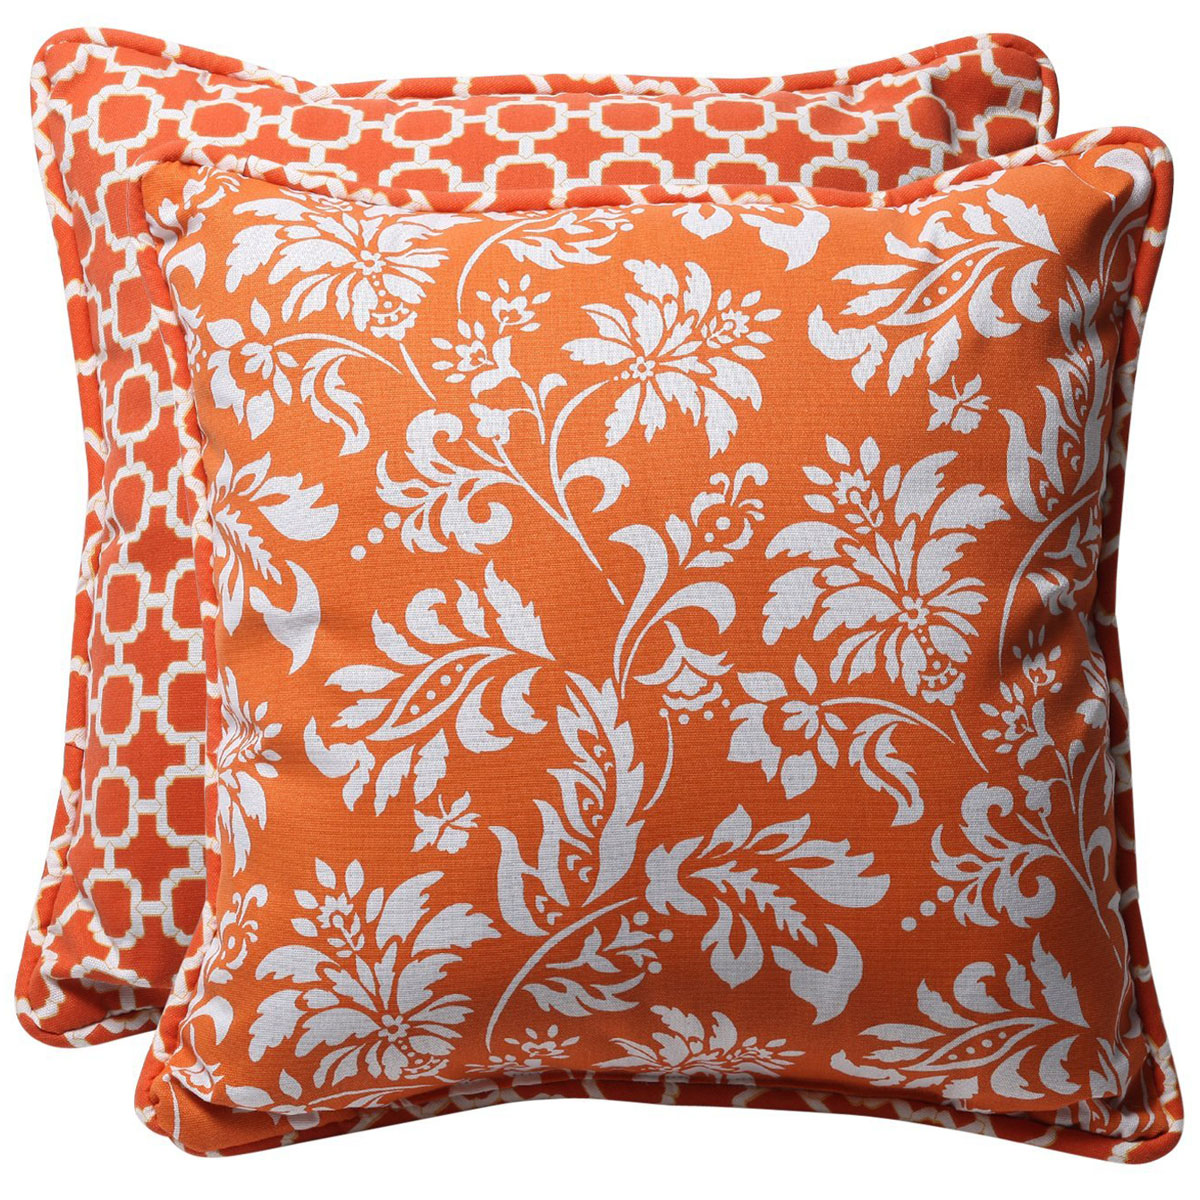 Orange Pillows For Sofa Best 25 Orange Throw Pillows Ideas